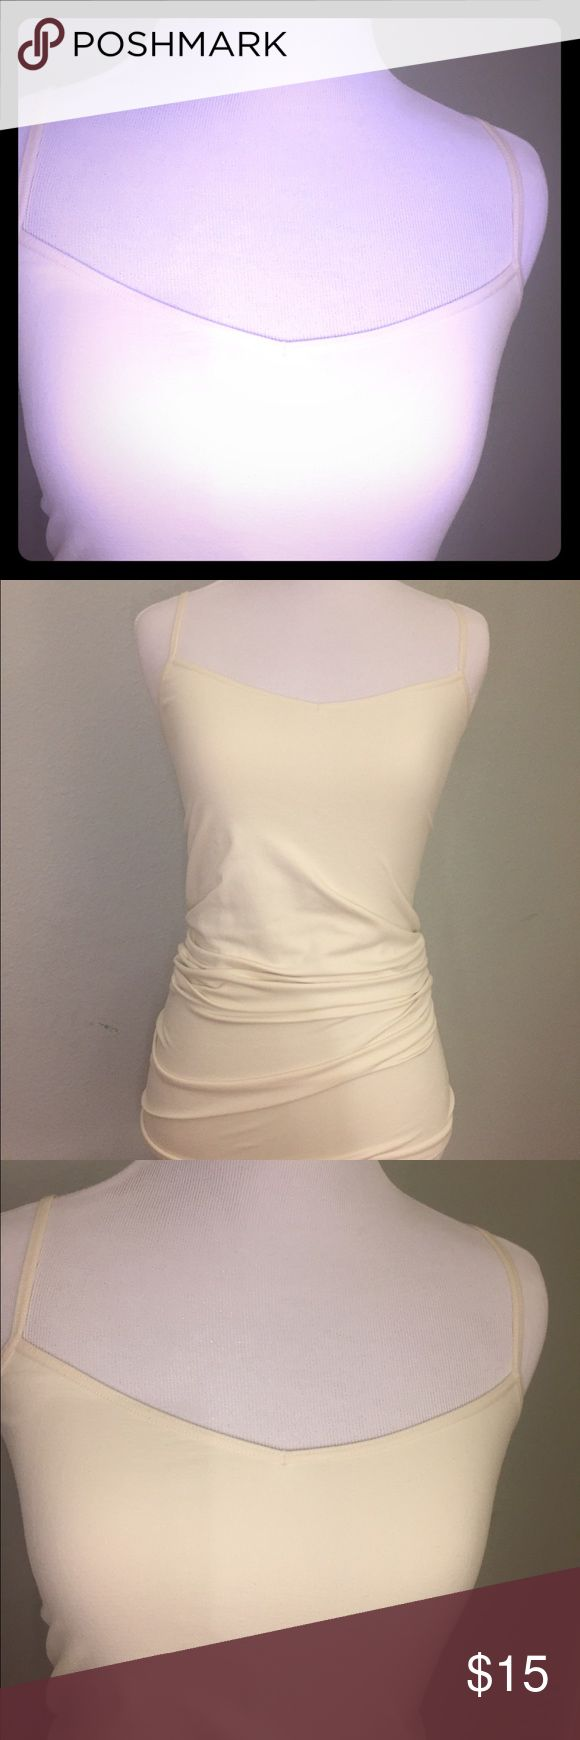 """Free People cream tank Intimately Free People basic cami. It's sized M/L. It's a cream/white color. Straps are adjustable. It's too long on me, I'm 5'1"""" and it looked like a Mariah Carey 90's dress, so here it is! Free People Tops Tank Tops"""